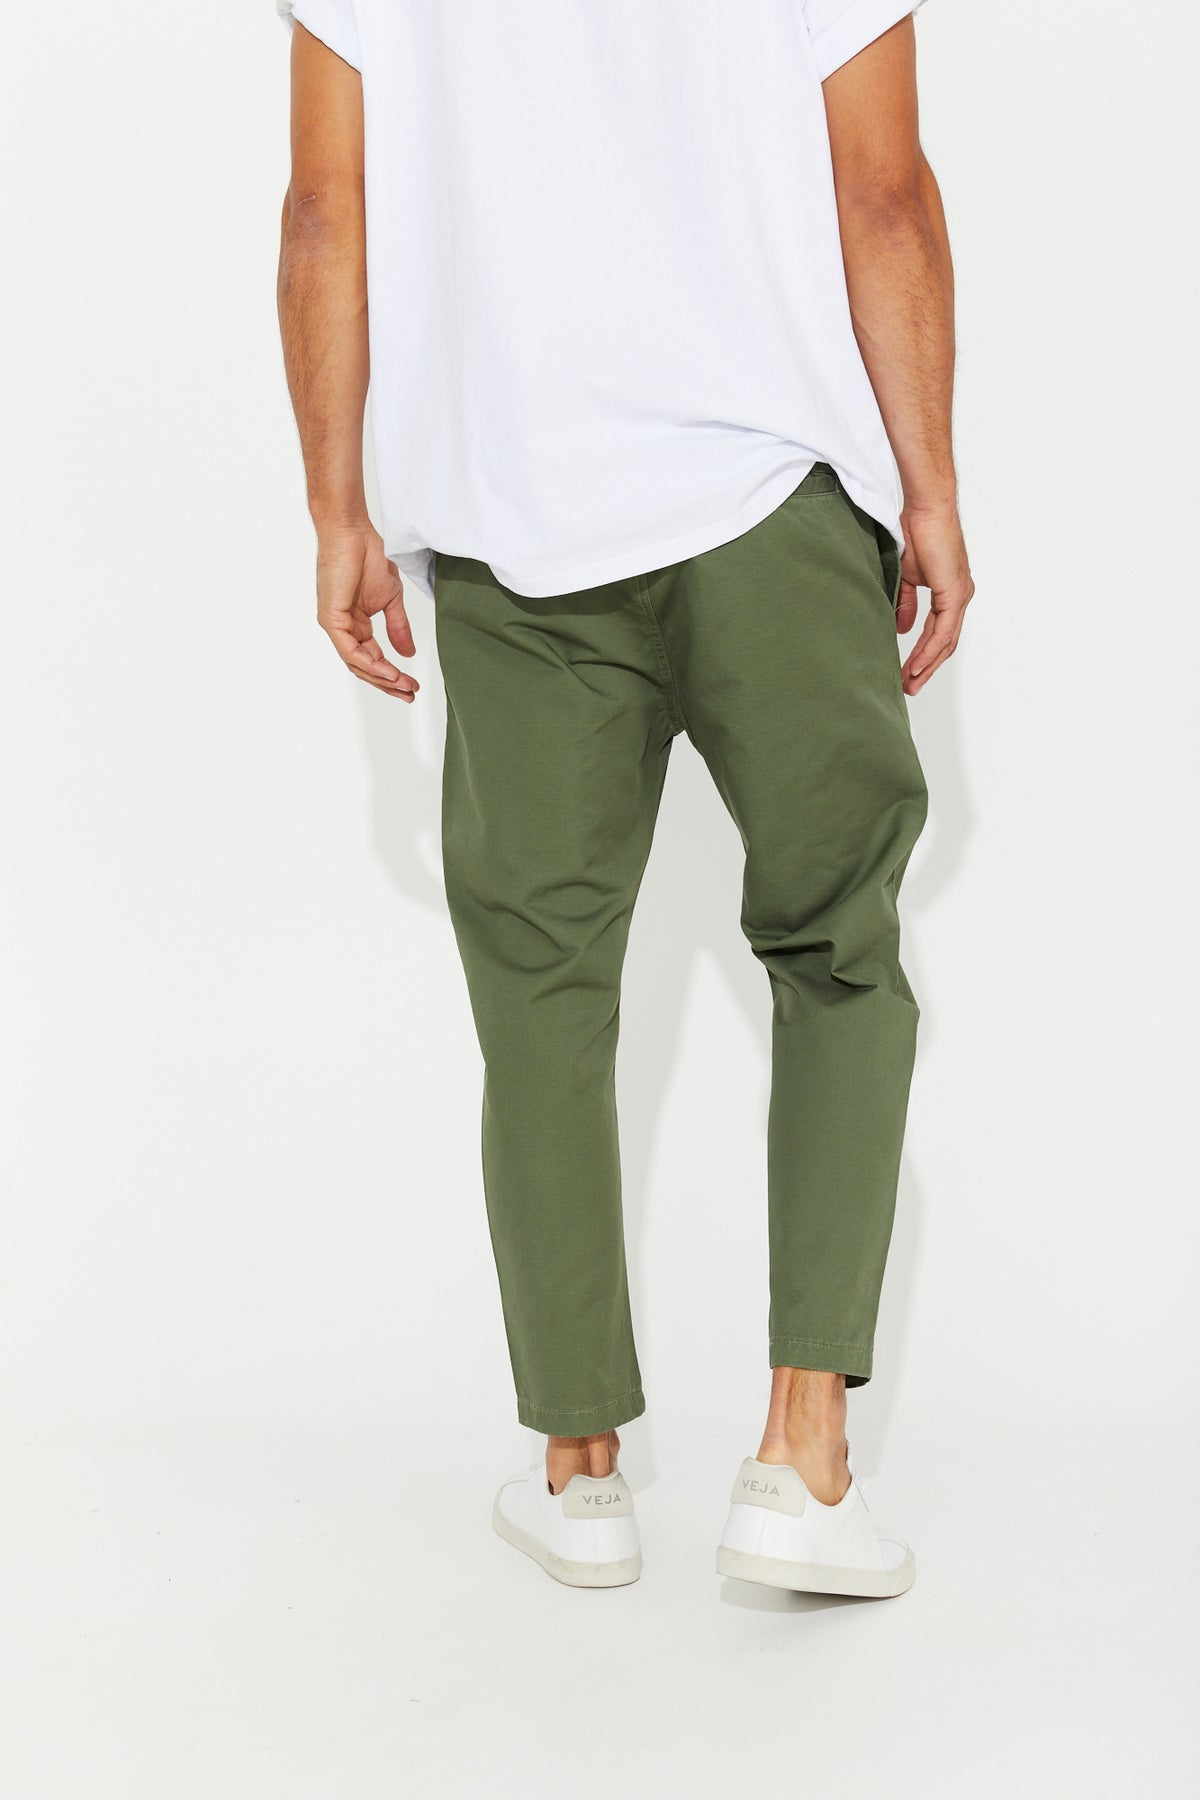 NTH Relaxed Jogger Army